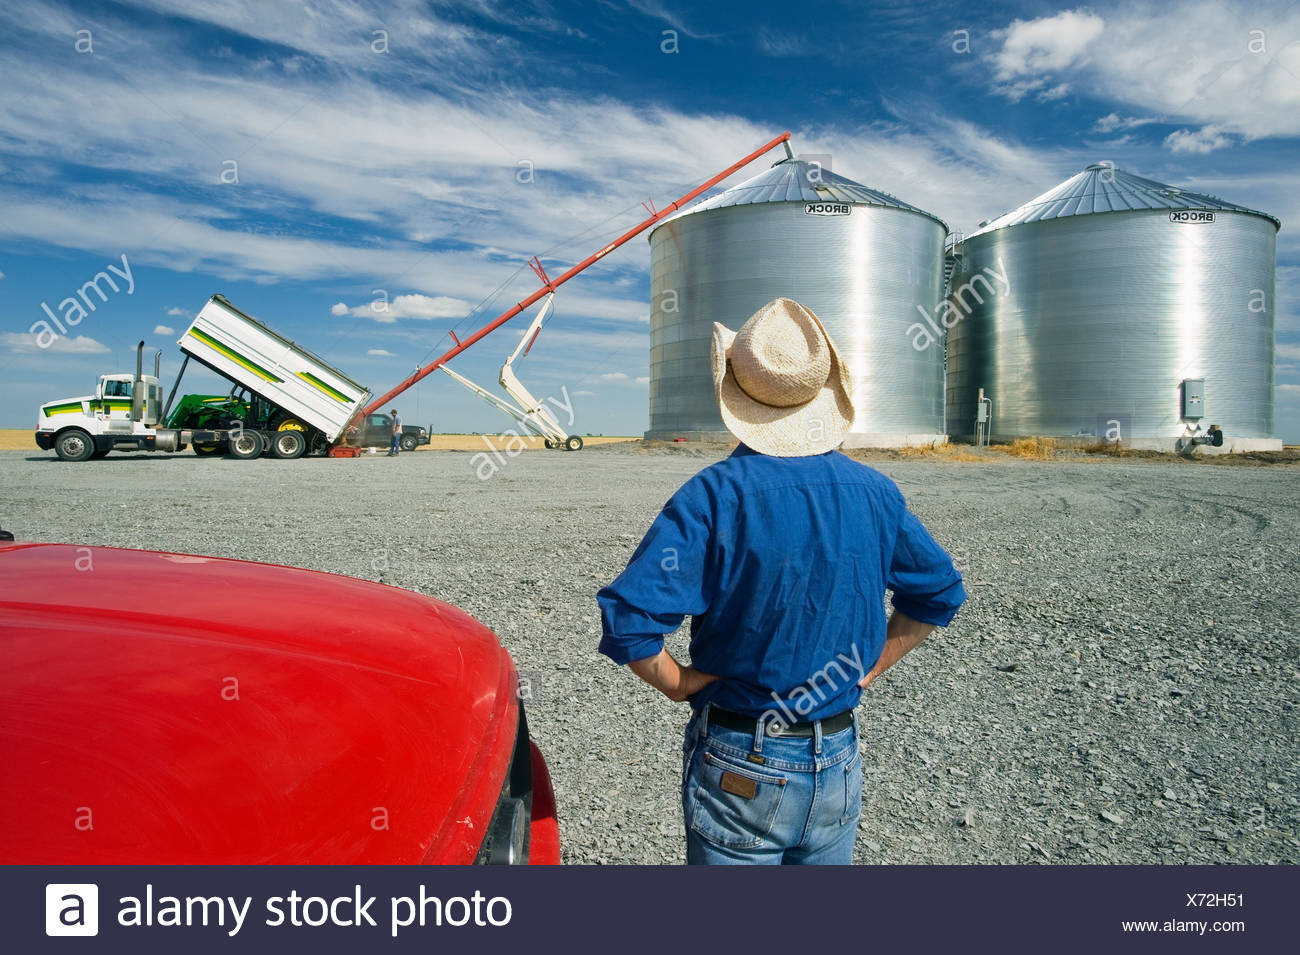 A farmer watches as his newly constructed grain bins are filled with newly harvested winter wheat / near Kane, Manitoba, Canada. - Stock Image